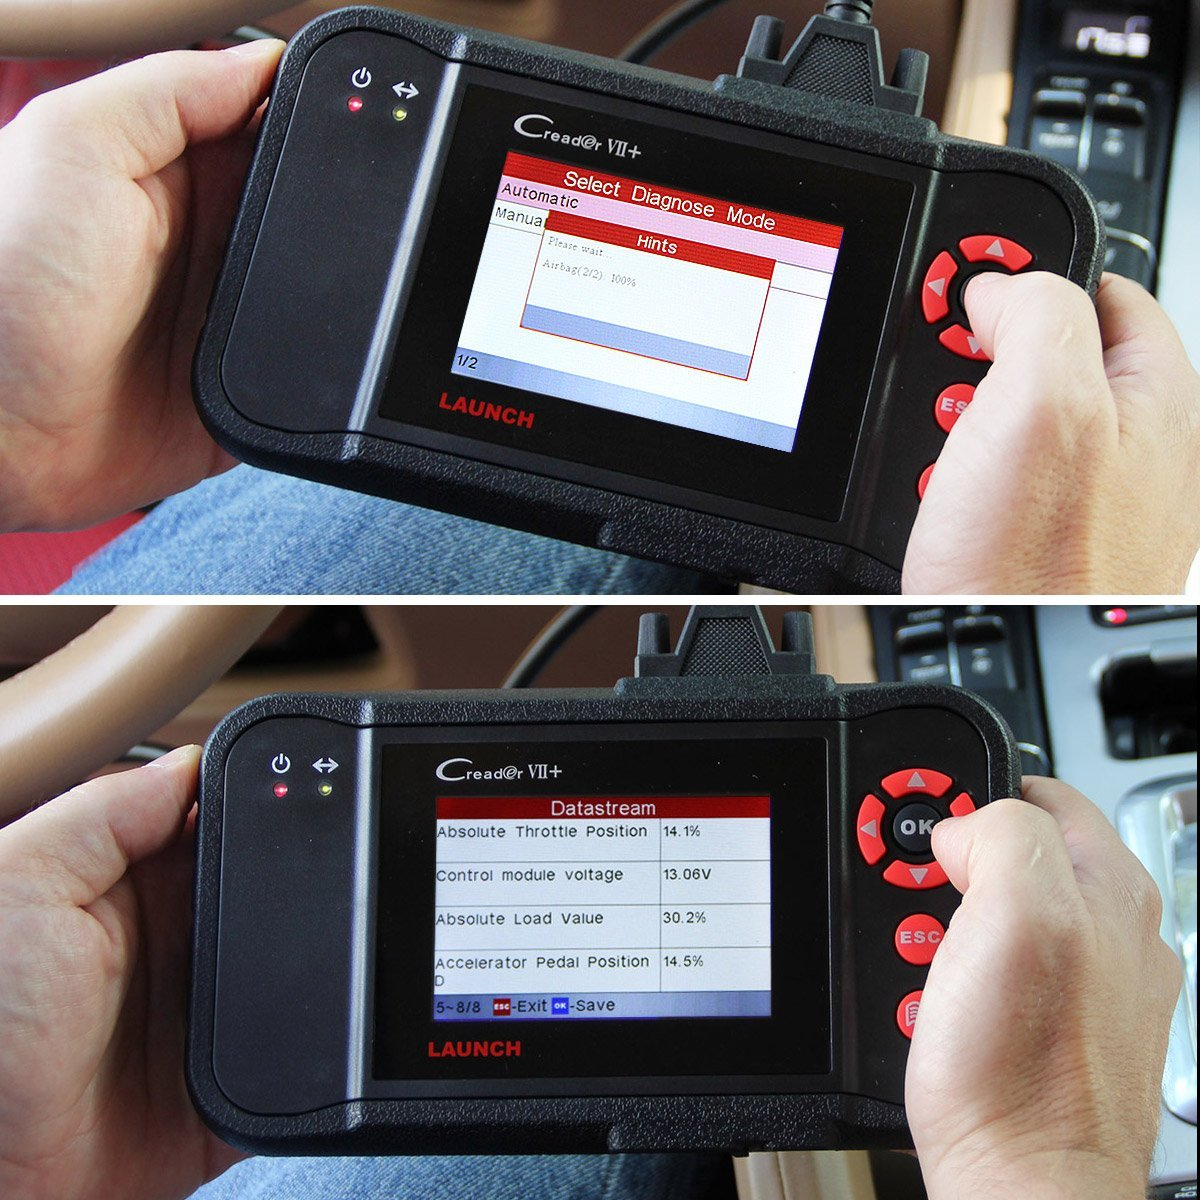 Launch X431 Creader VII+ ( CRP123) Auto Code Reader EOBD, OBD2 Scanner Scan Tool Testing Engine/Transmission/ABS/ Airbag System Update via PC by Launch (Image #4)